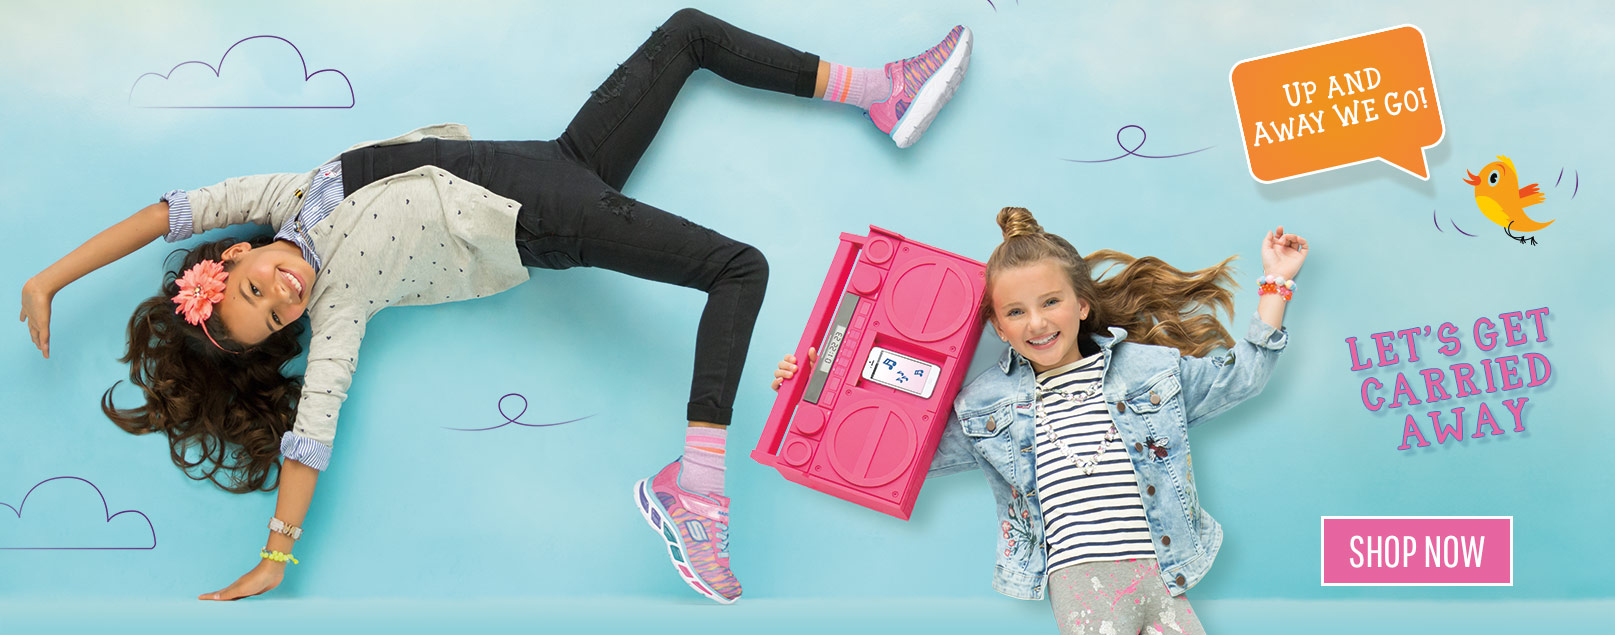 Skechers shoes for Girls including Twinkle Toes, Sport shoes with Memory Foam, fashion sneakers, casual comfort shoes and boots